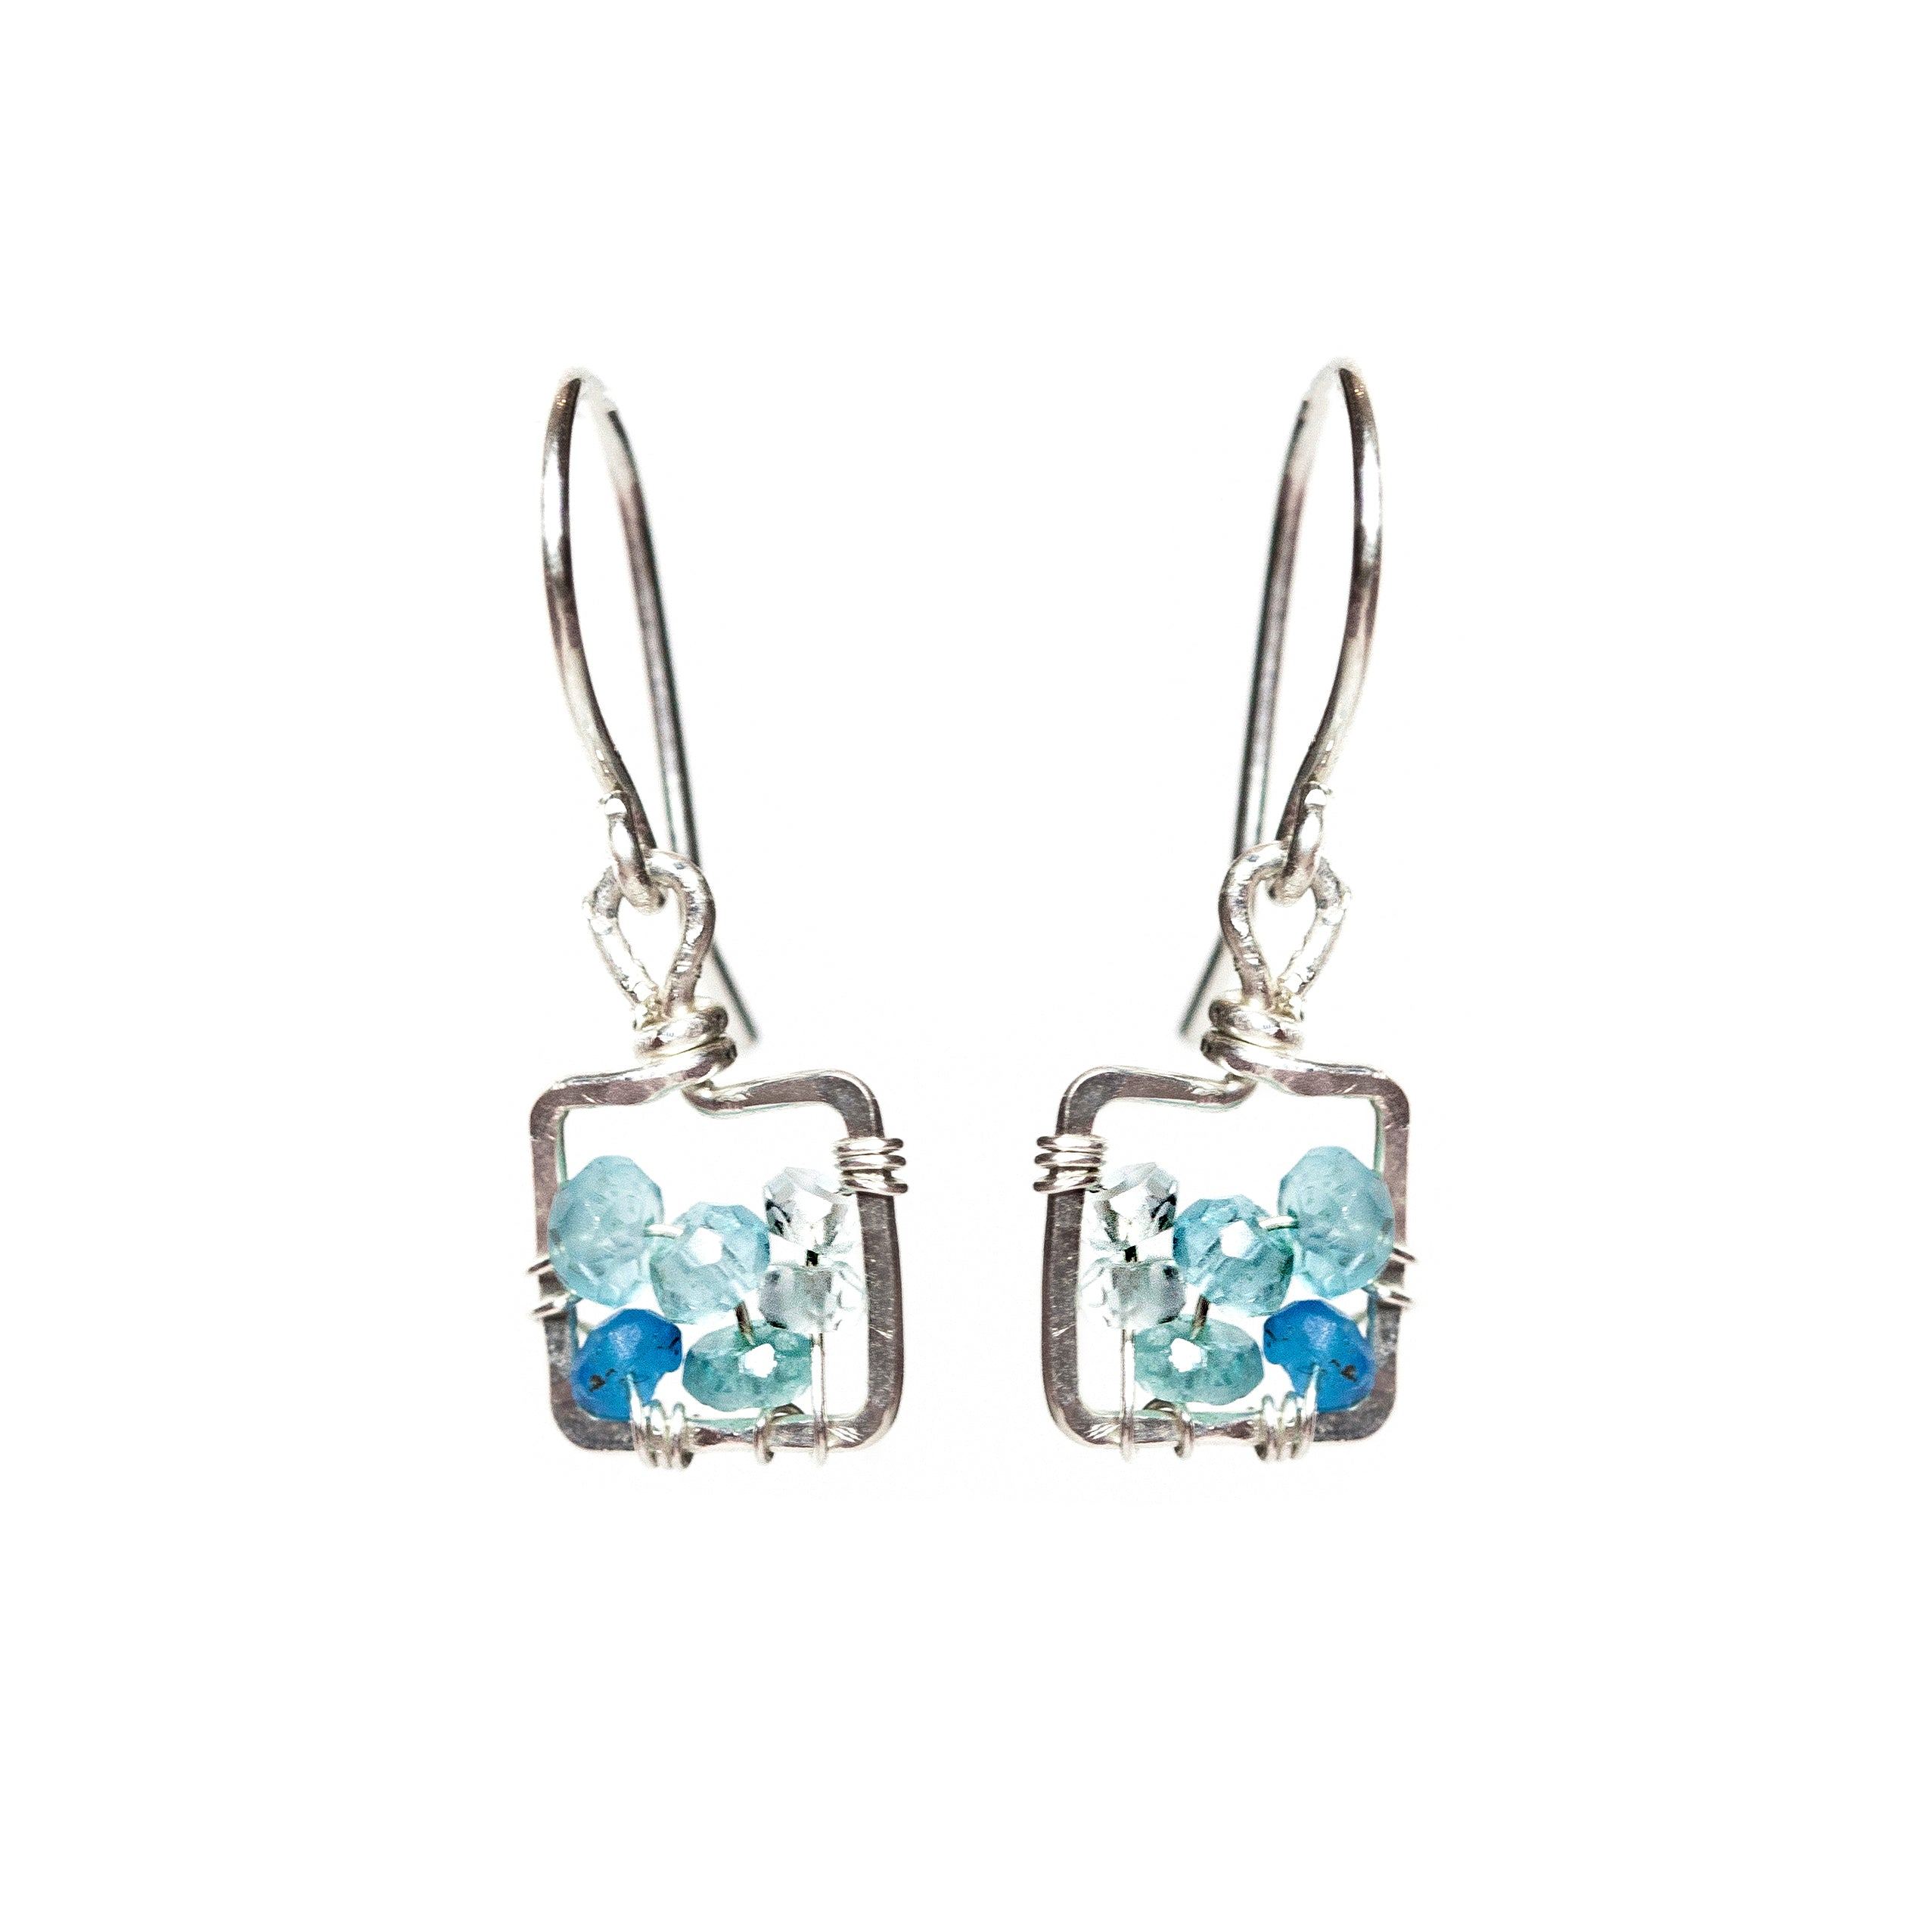 large product jewelry medium designs artisan dona miller water apatite earrings llc copy collection with med rain